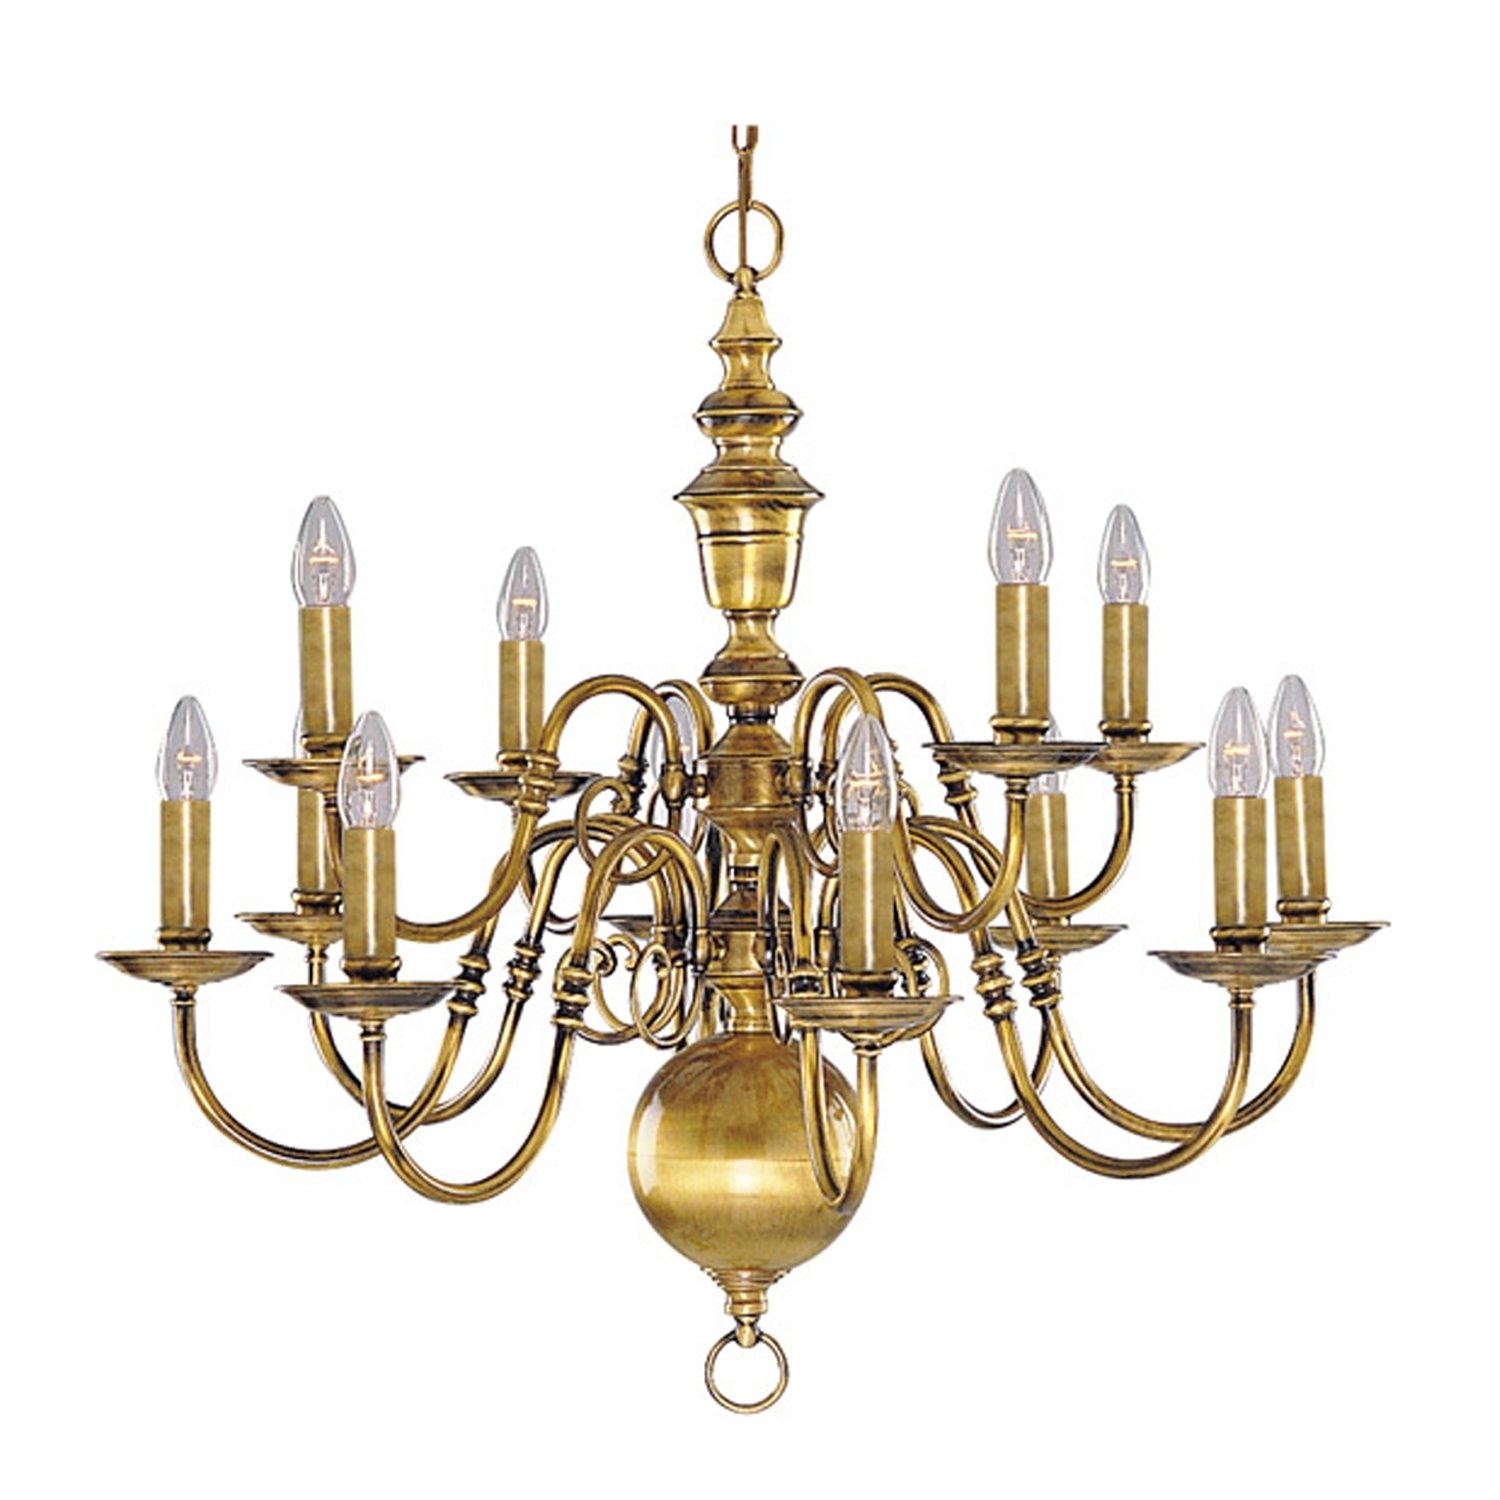 Vintage Brass Chandeliers Throughout Preferred Chandeliers Design : Wonderful Interesting Antique Brass Chandelier (View 7 of 15)